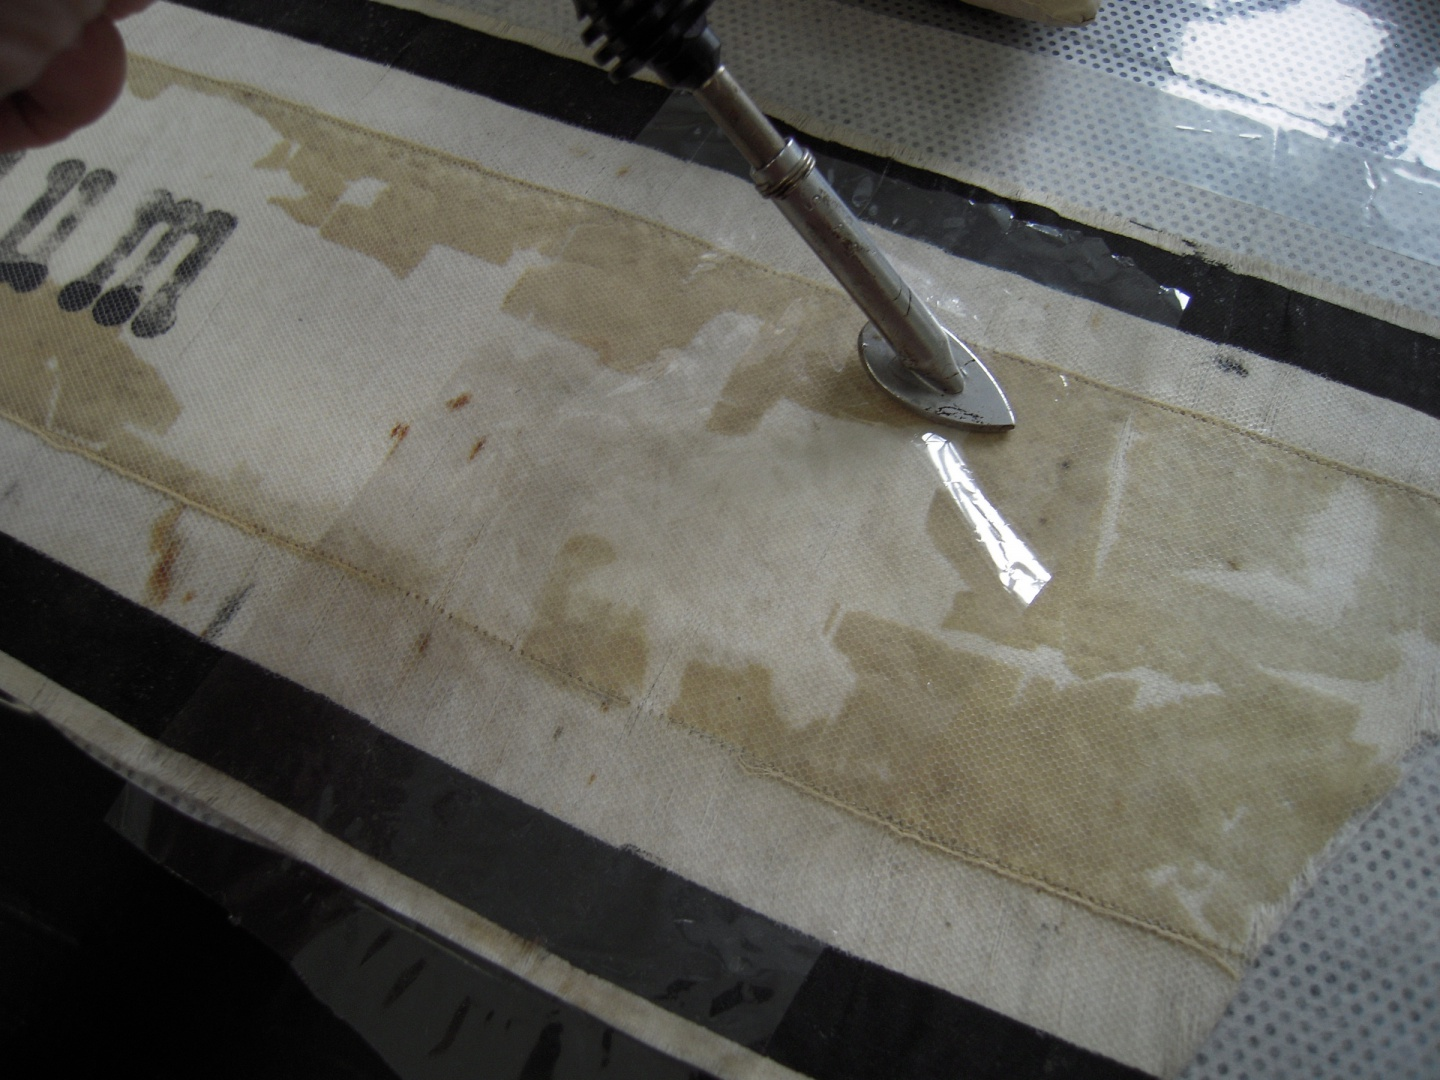 ill 24. Thermal processing with a heated spatula. The whole surface of the ribbon was covered with netting to warrant its free hanging when displayed.